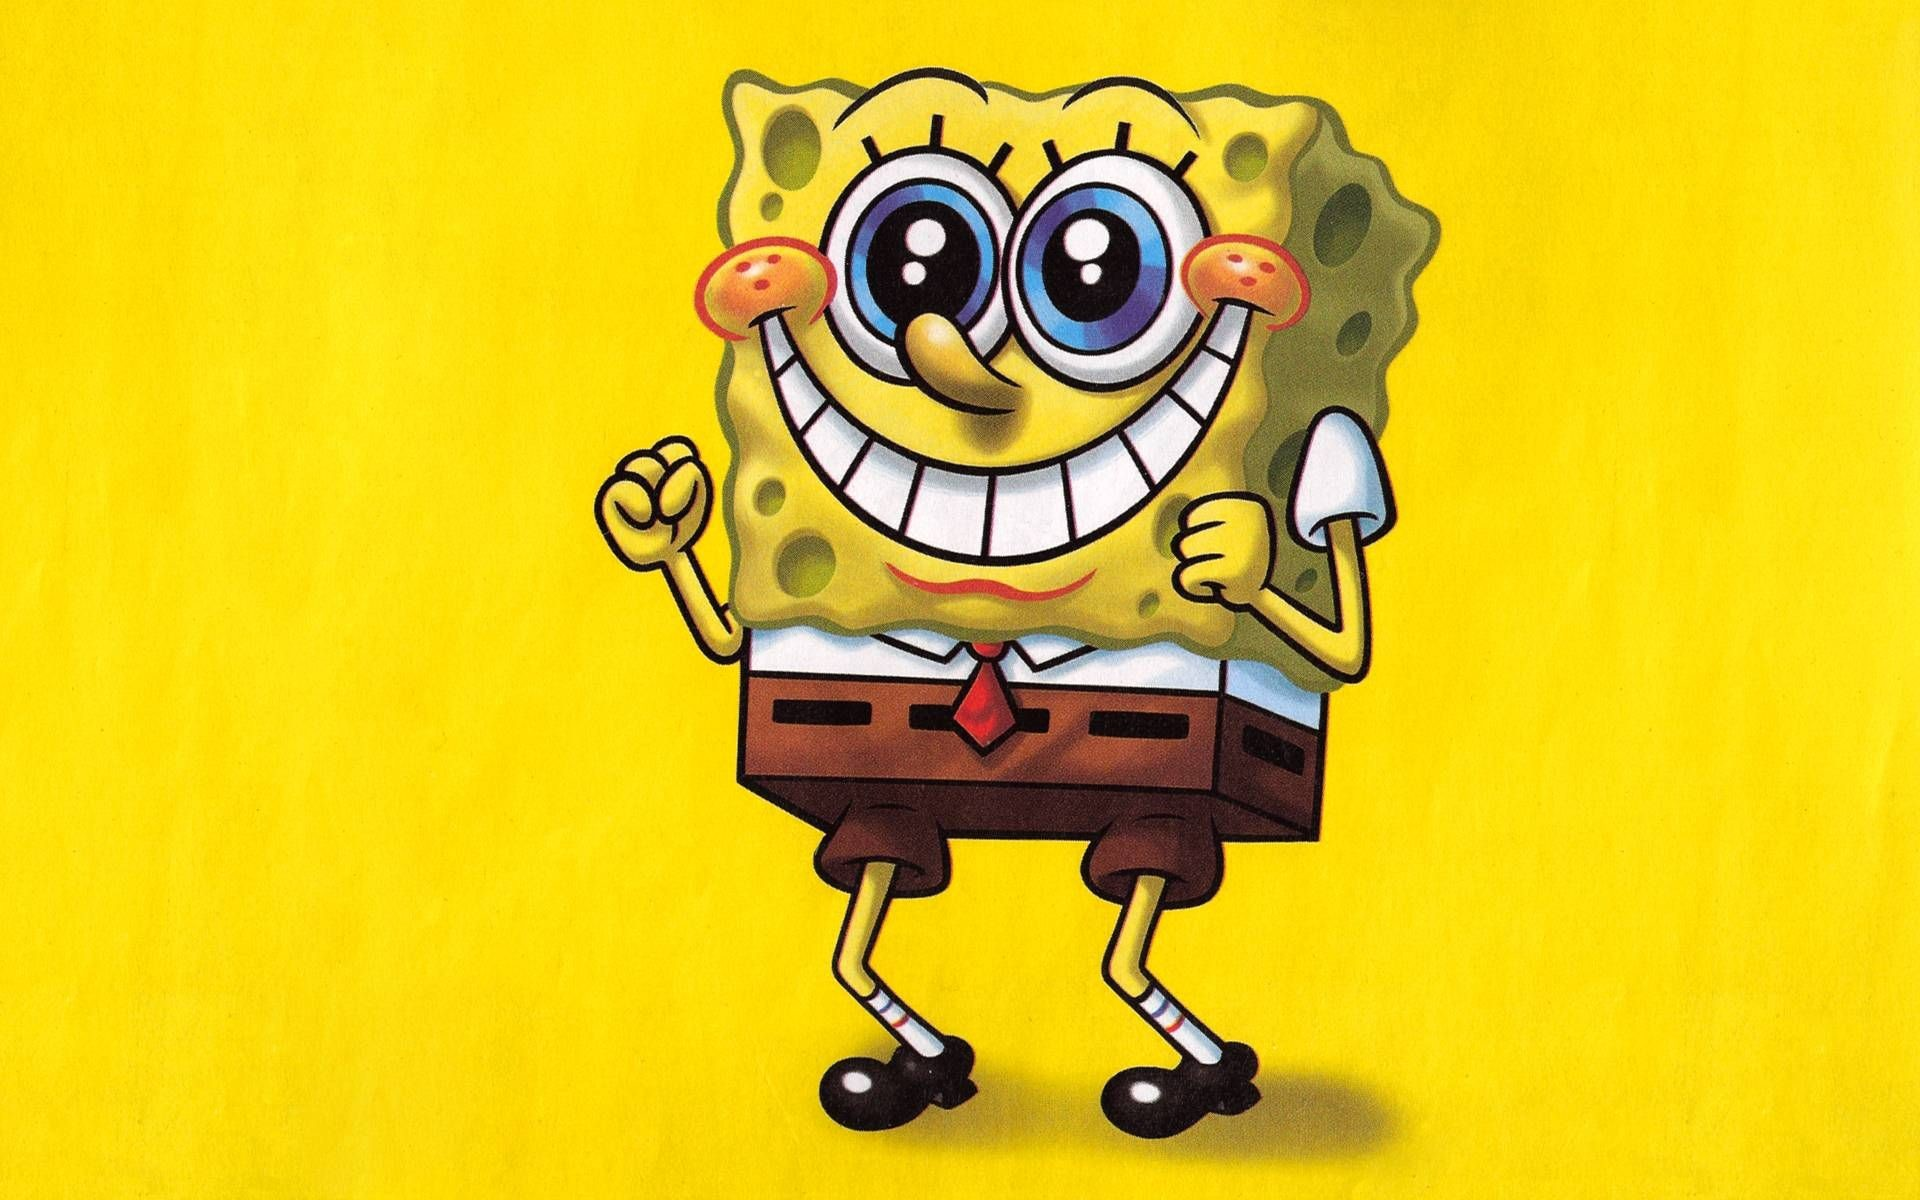 1920x1200 Spongebob Squarepants Wallpapers 1920×1080 Spongebob Pictures Wallpapers (43 Wallpapers) | Adorable